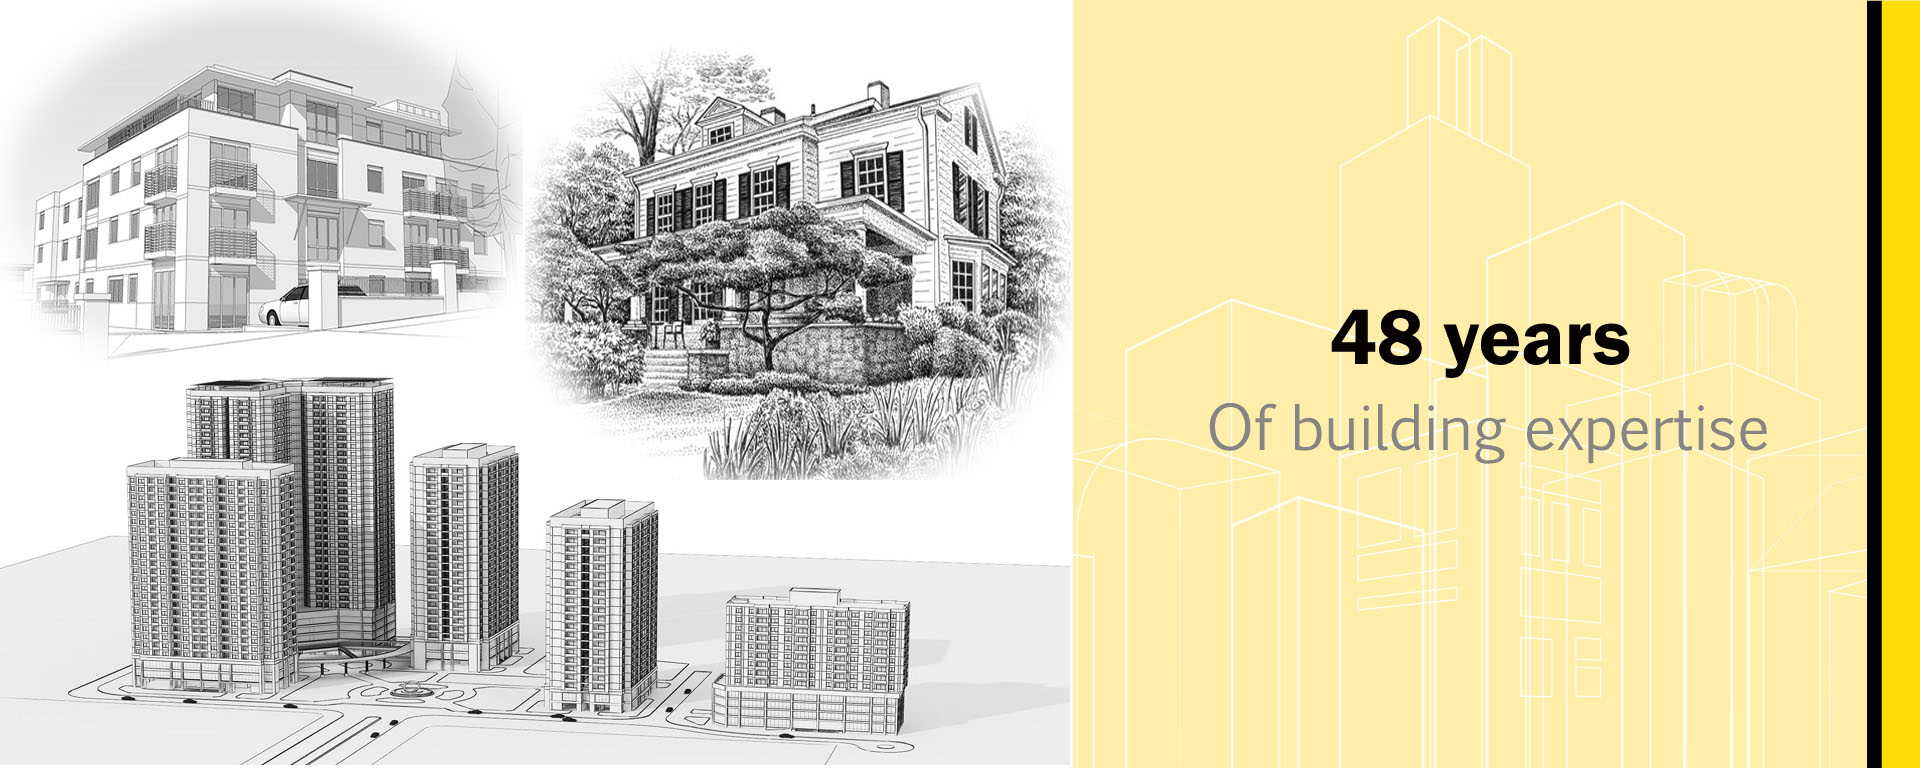 Web-Banner-Image-3-with-the-word-of-48-yrs-of-building-expertise